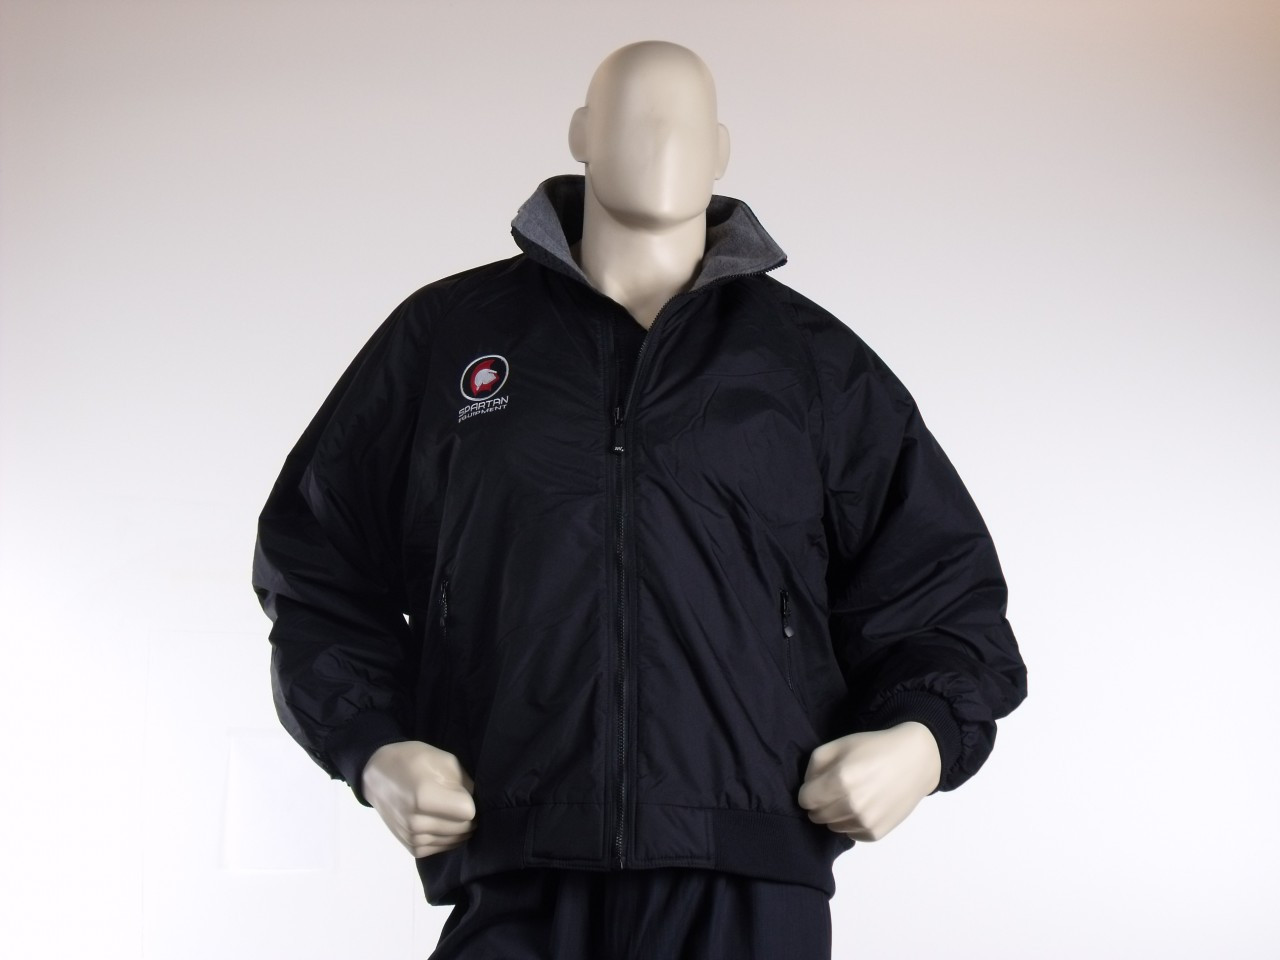 Spartan Equipment 365 Tough & Lite™ Jacket